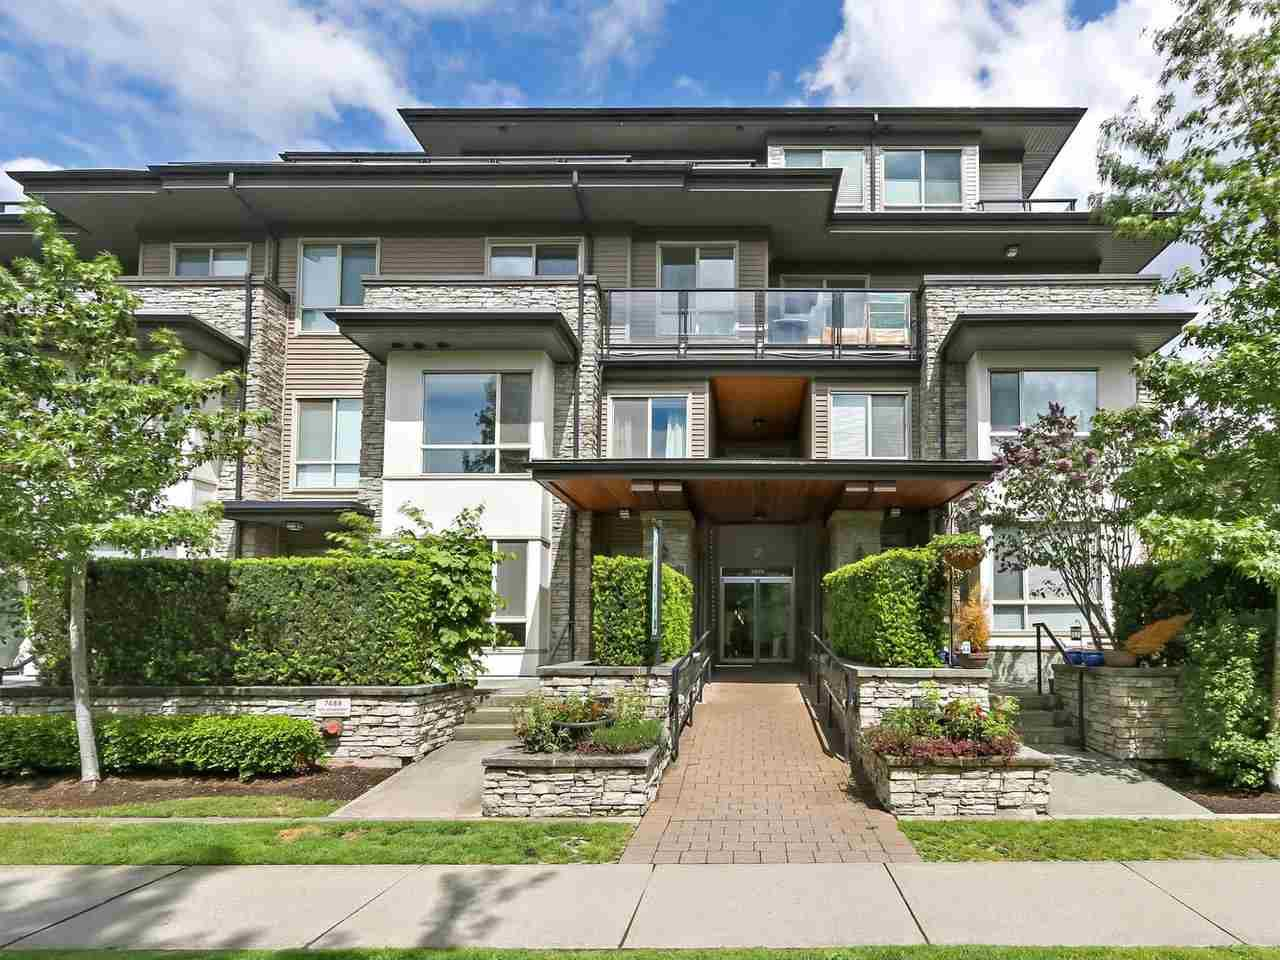 """Main Photo: 409 7488 BYRNEPARK Walk in Burnaby: South Slope Condo for sale in """"GREEN-Autumn"""" (Burnaby South)  : MLS®# R2371632"""